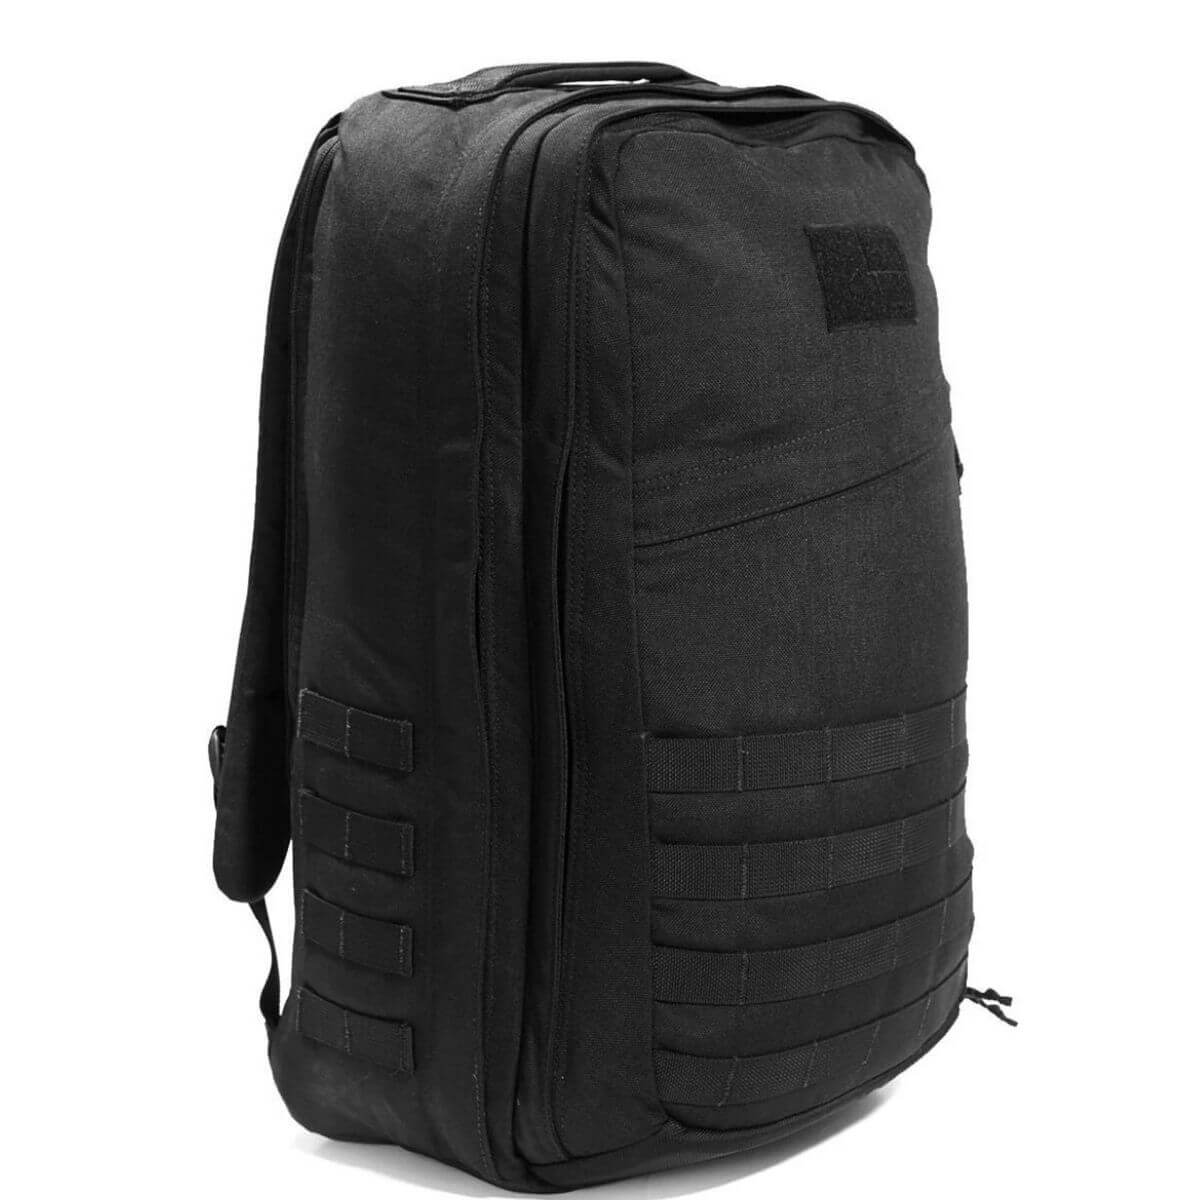 Black GORUCK nylon backpack.